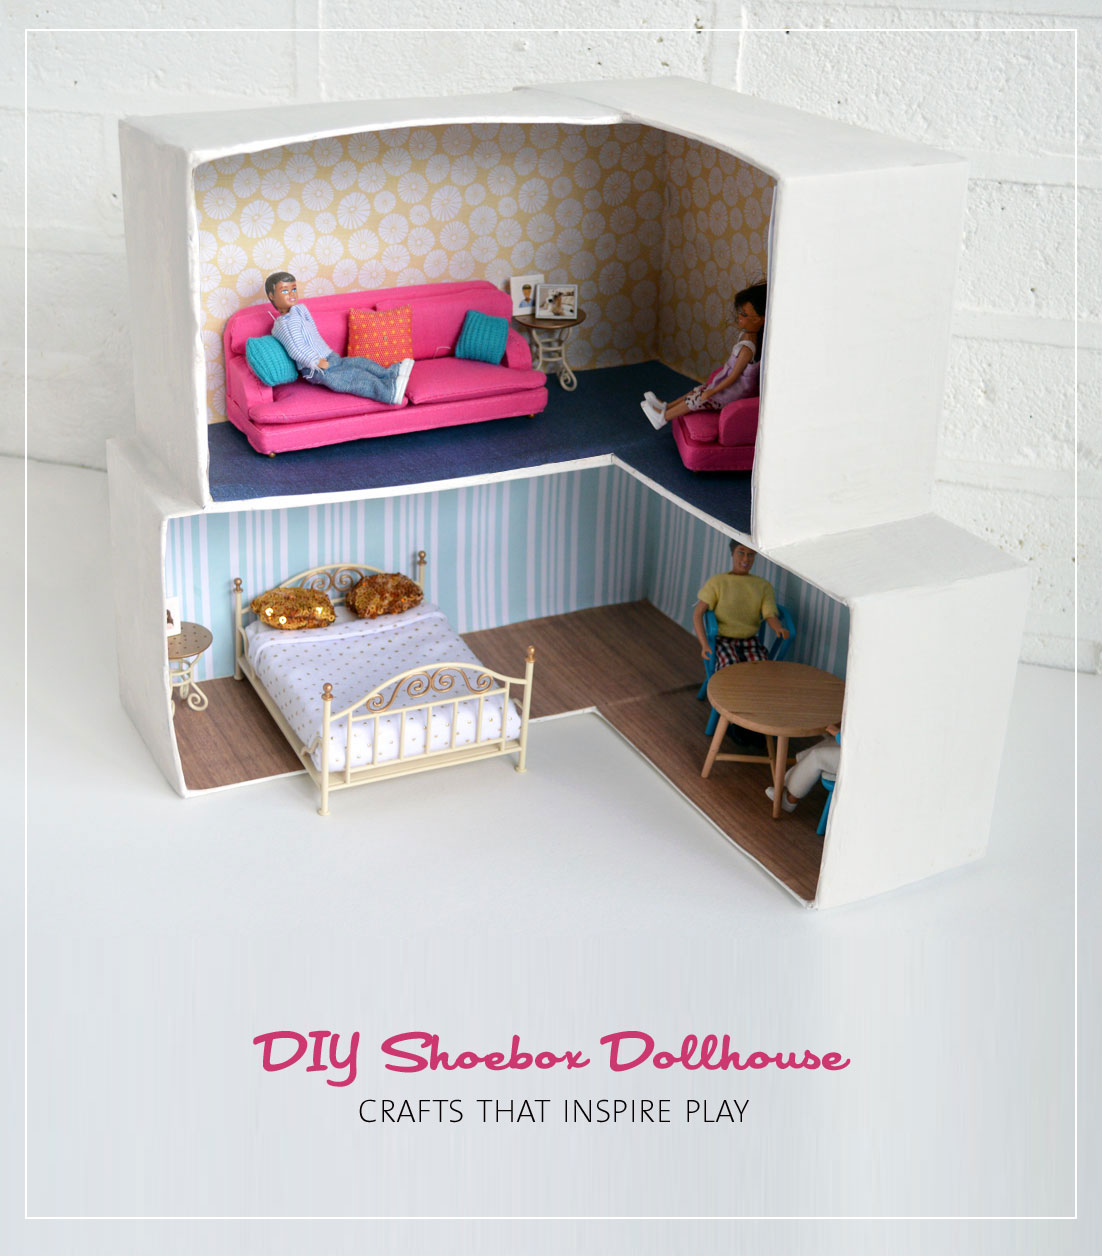 MollyMooCrafts Cardboard Crafting: DIY Dollhouse